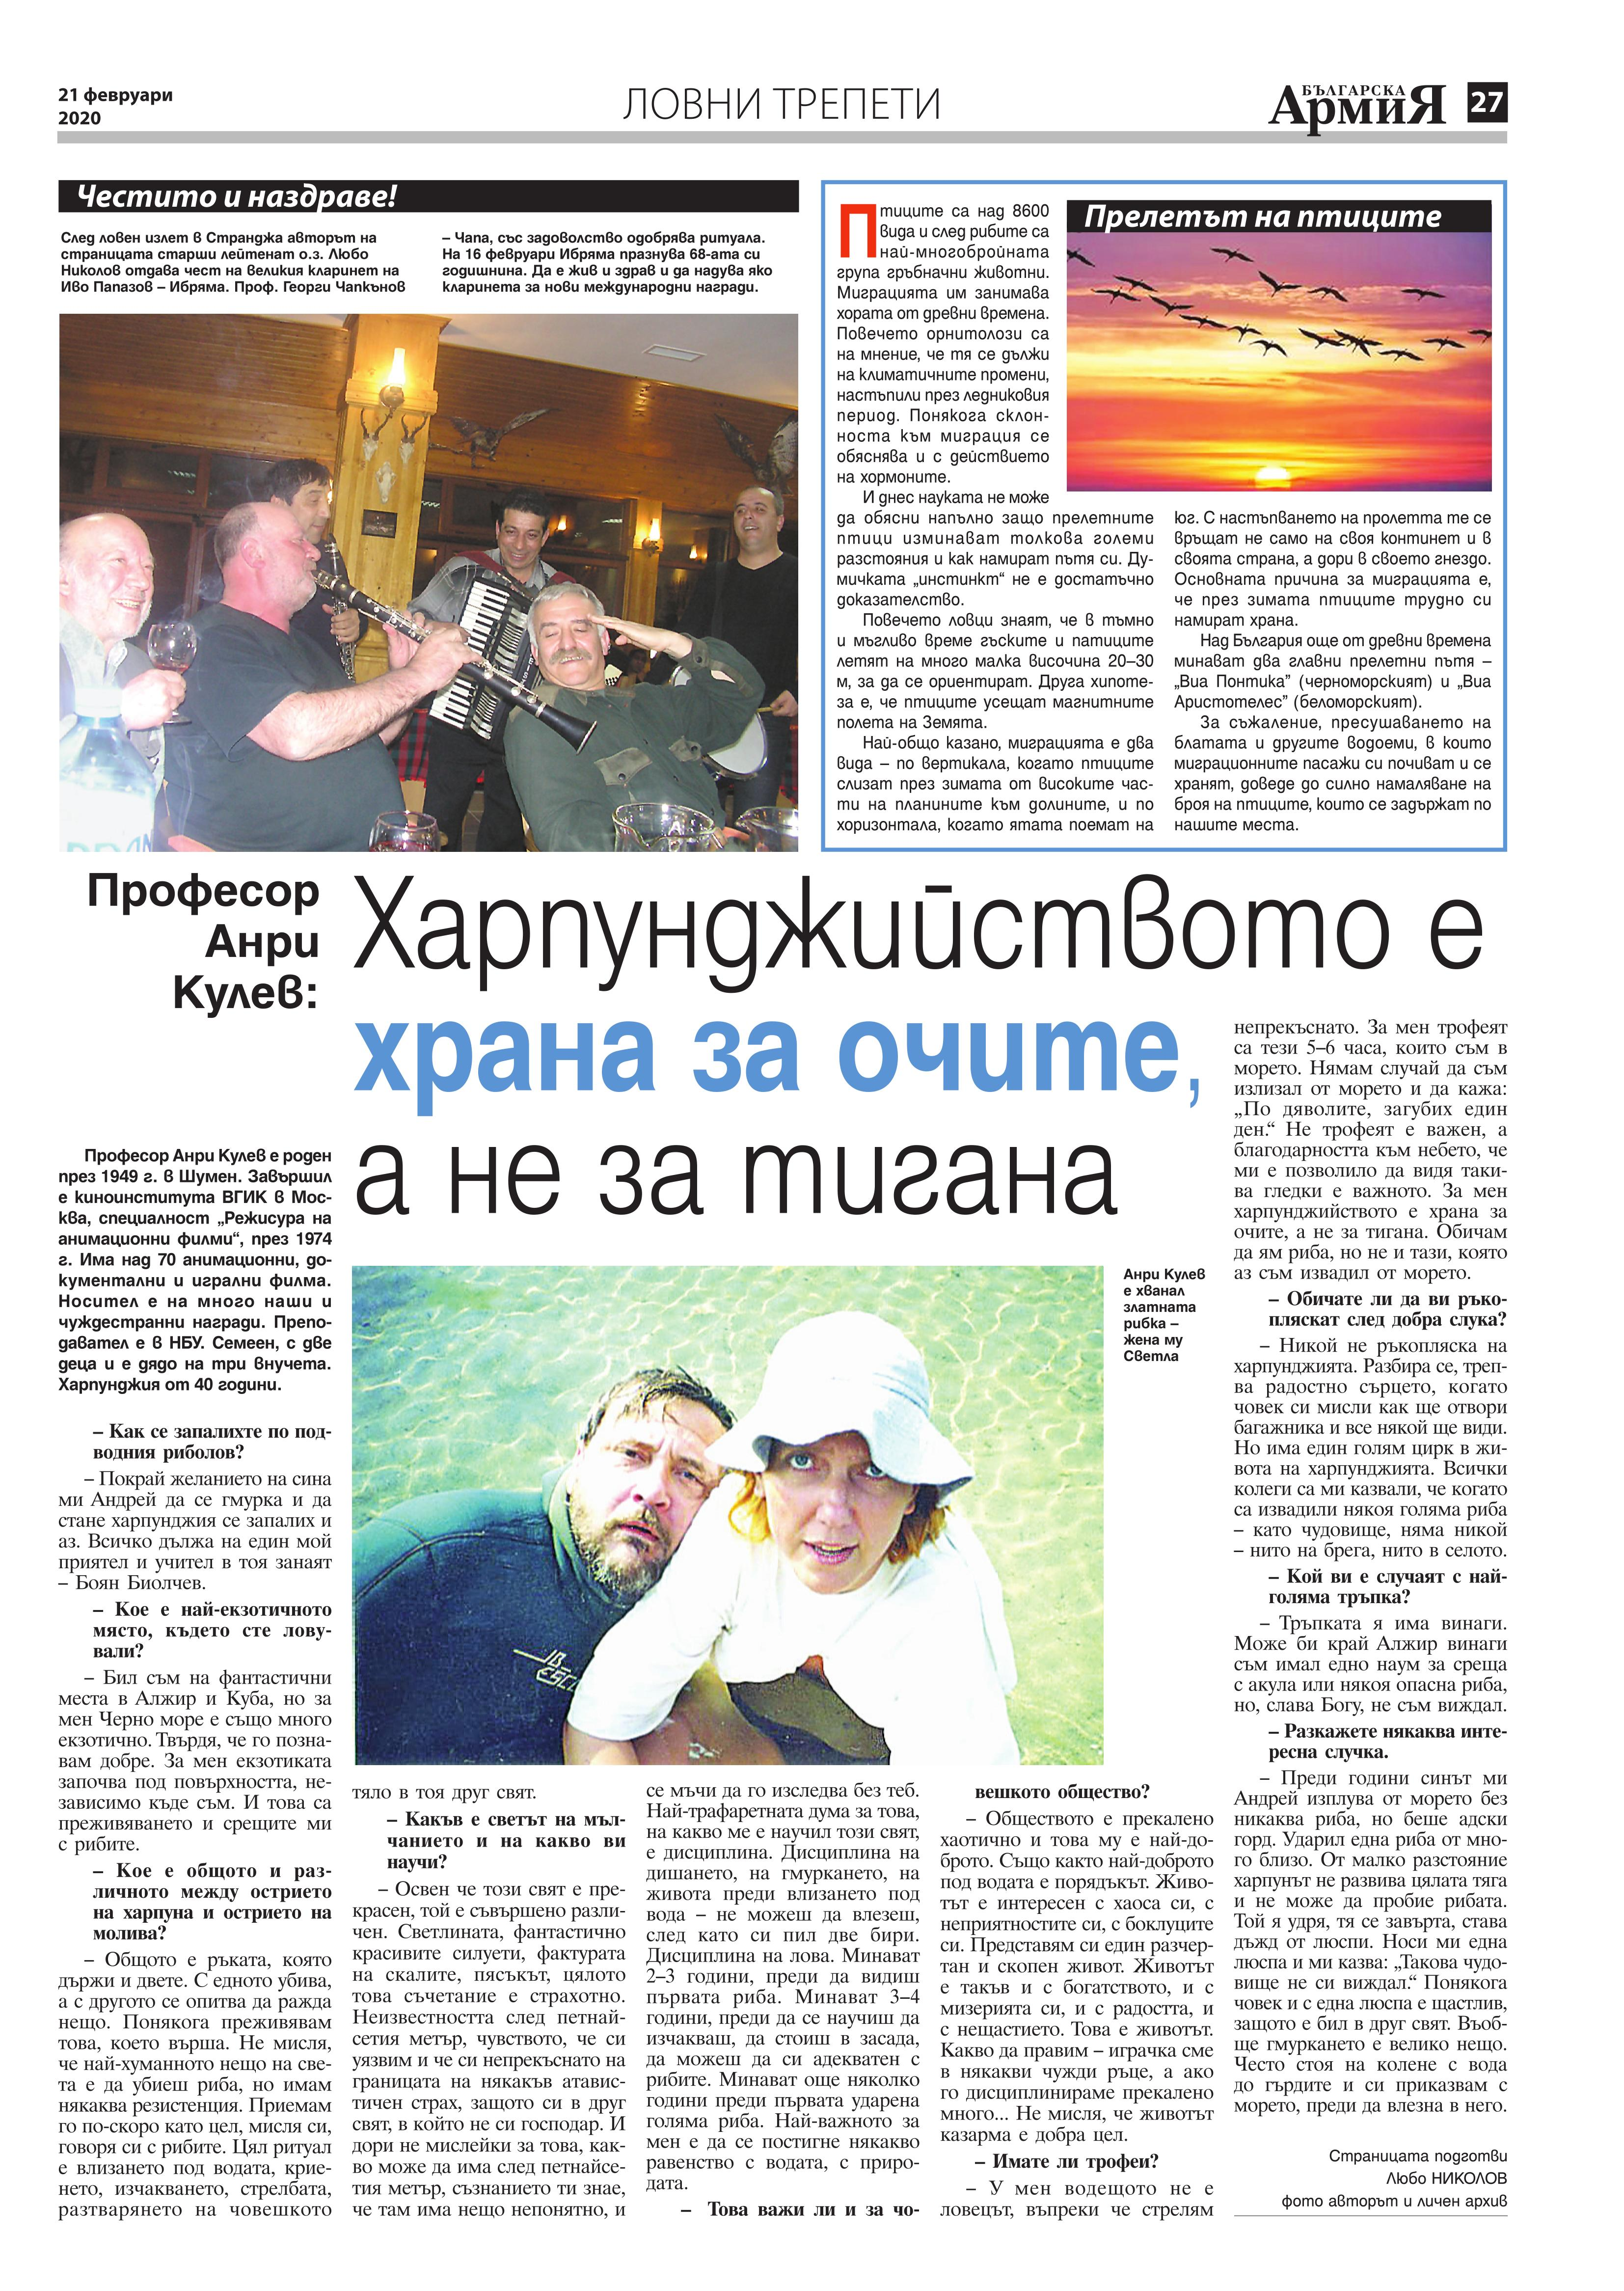 https://www.armymedia.bg/wp-content/uploads/2015/06/27.page1_-107.jpg